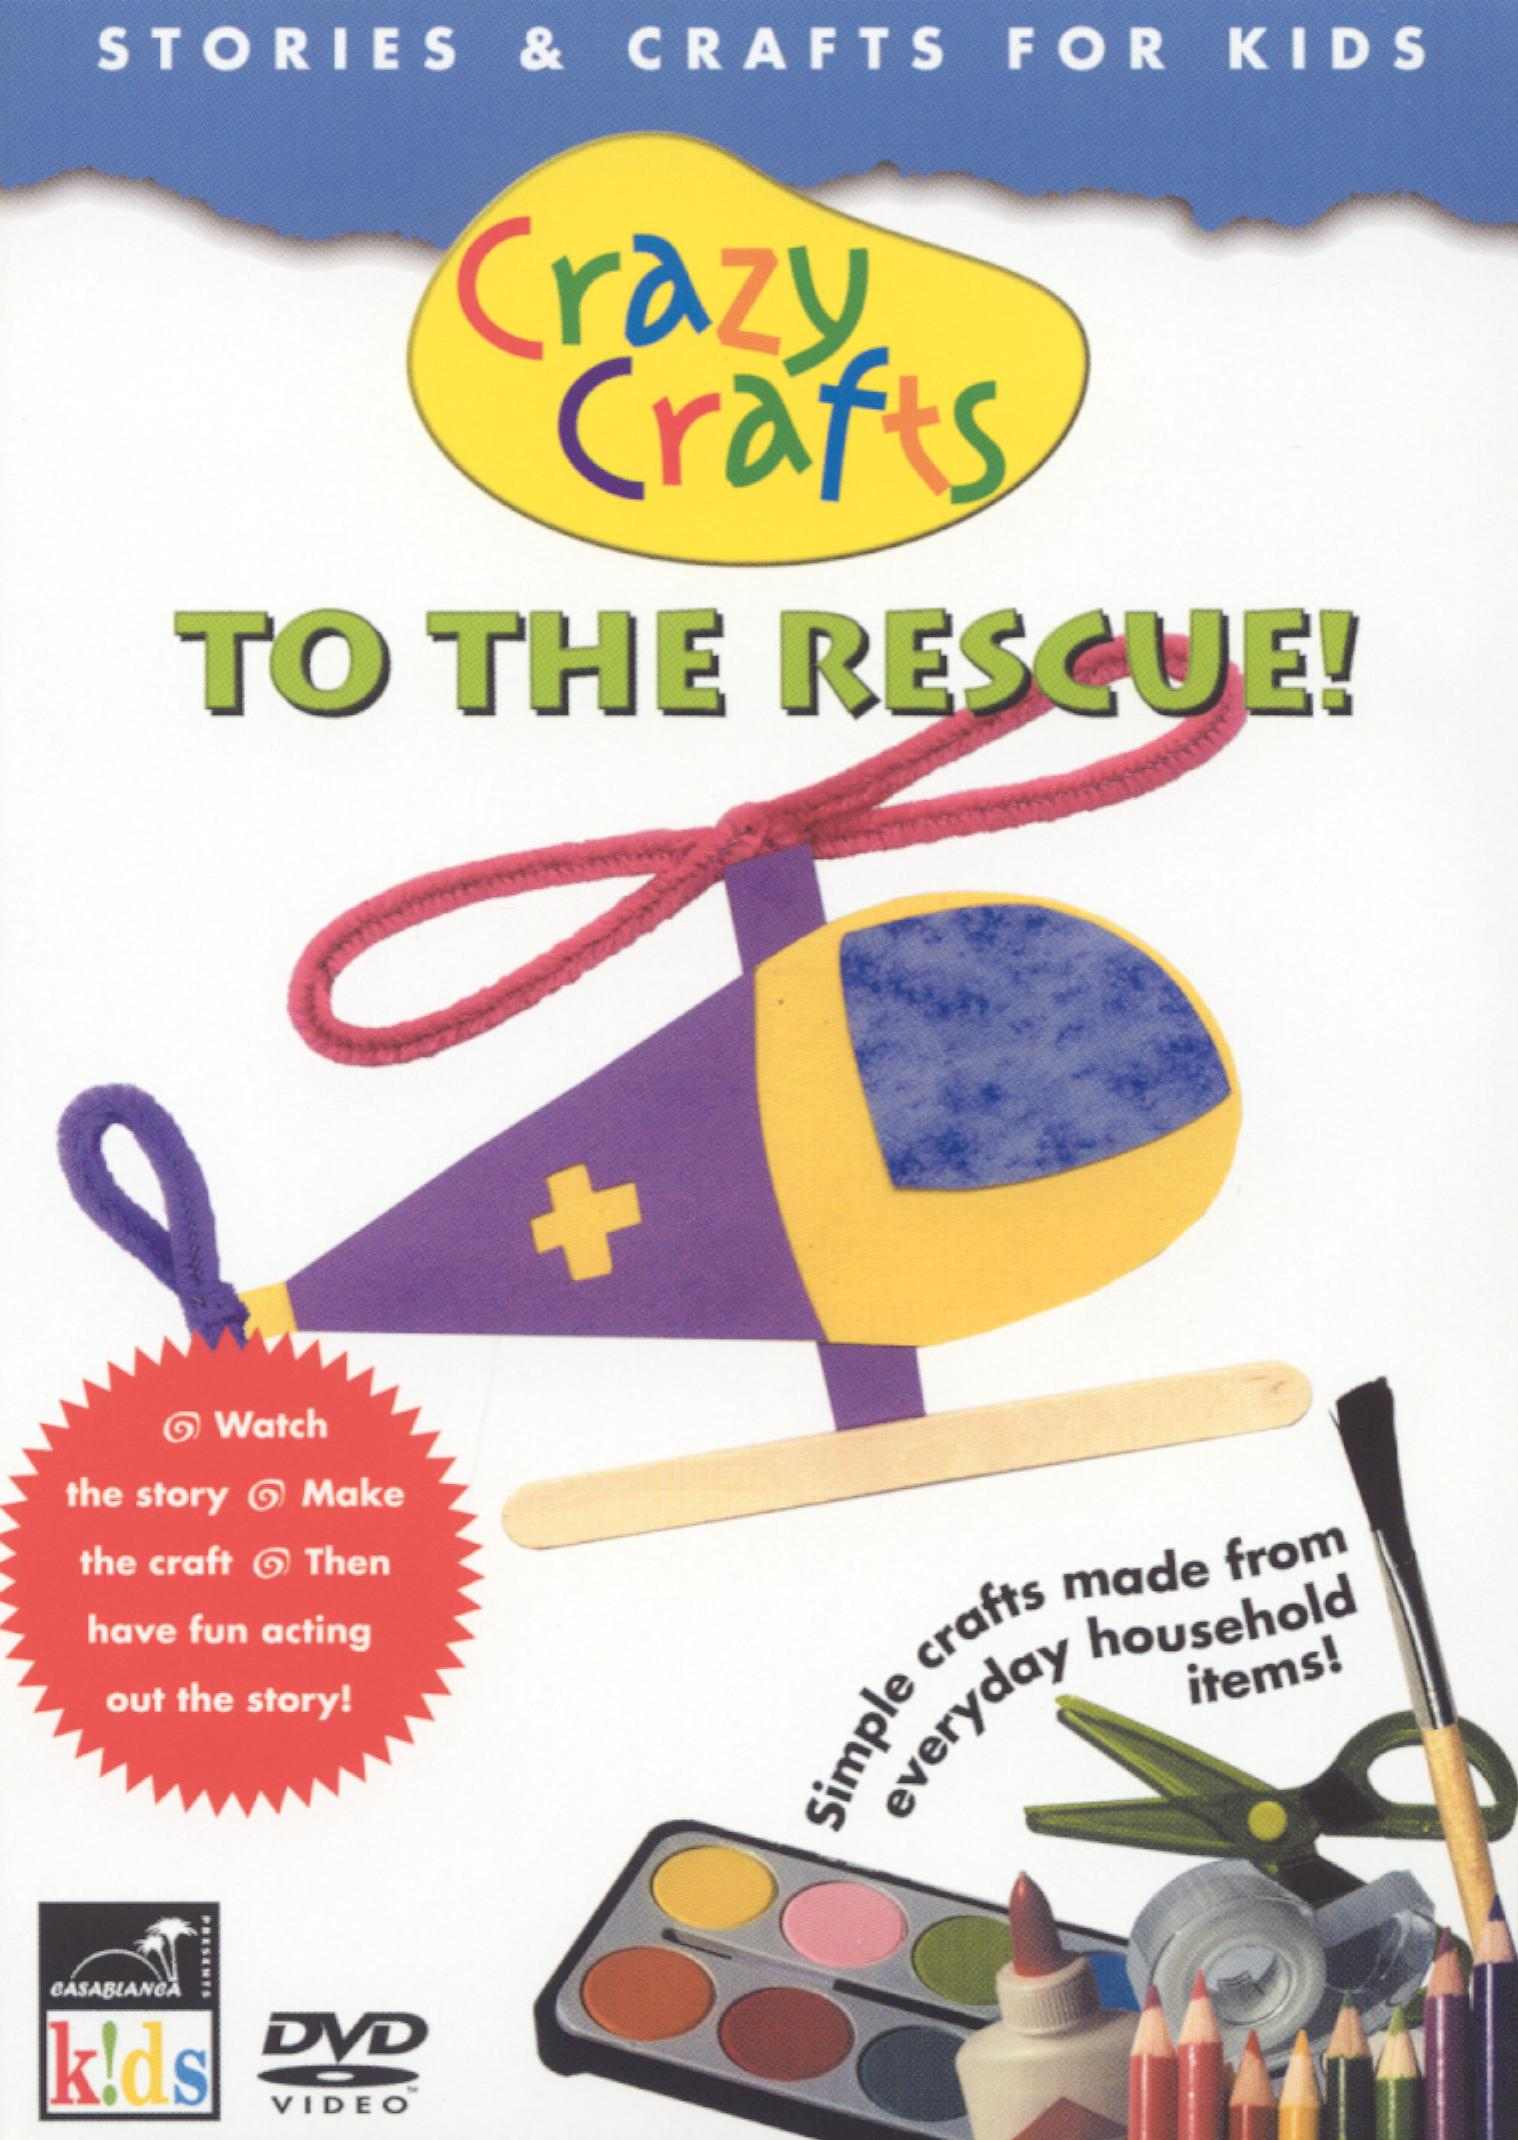 Crazy Crafts: To the Rescue